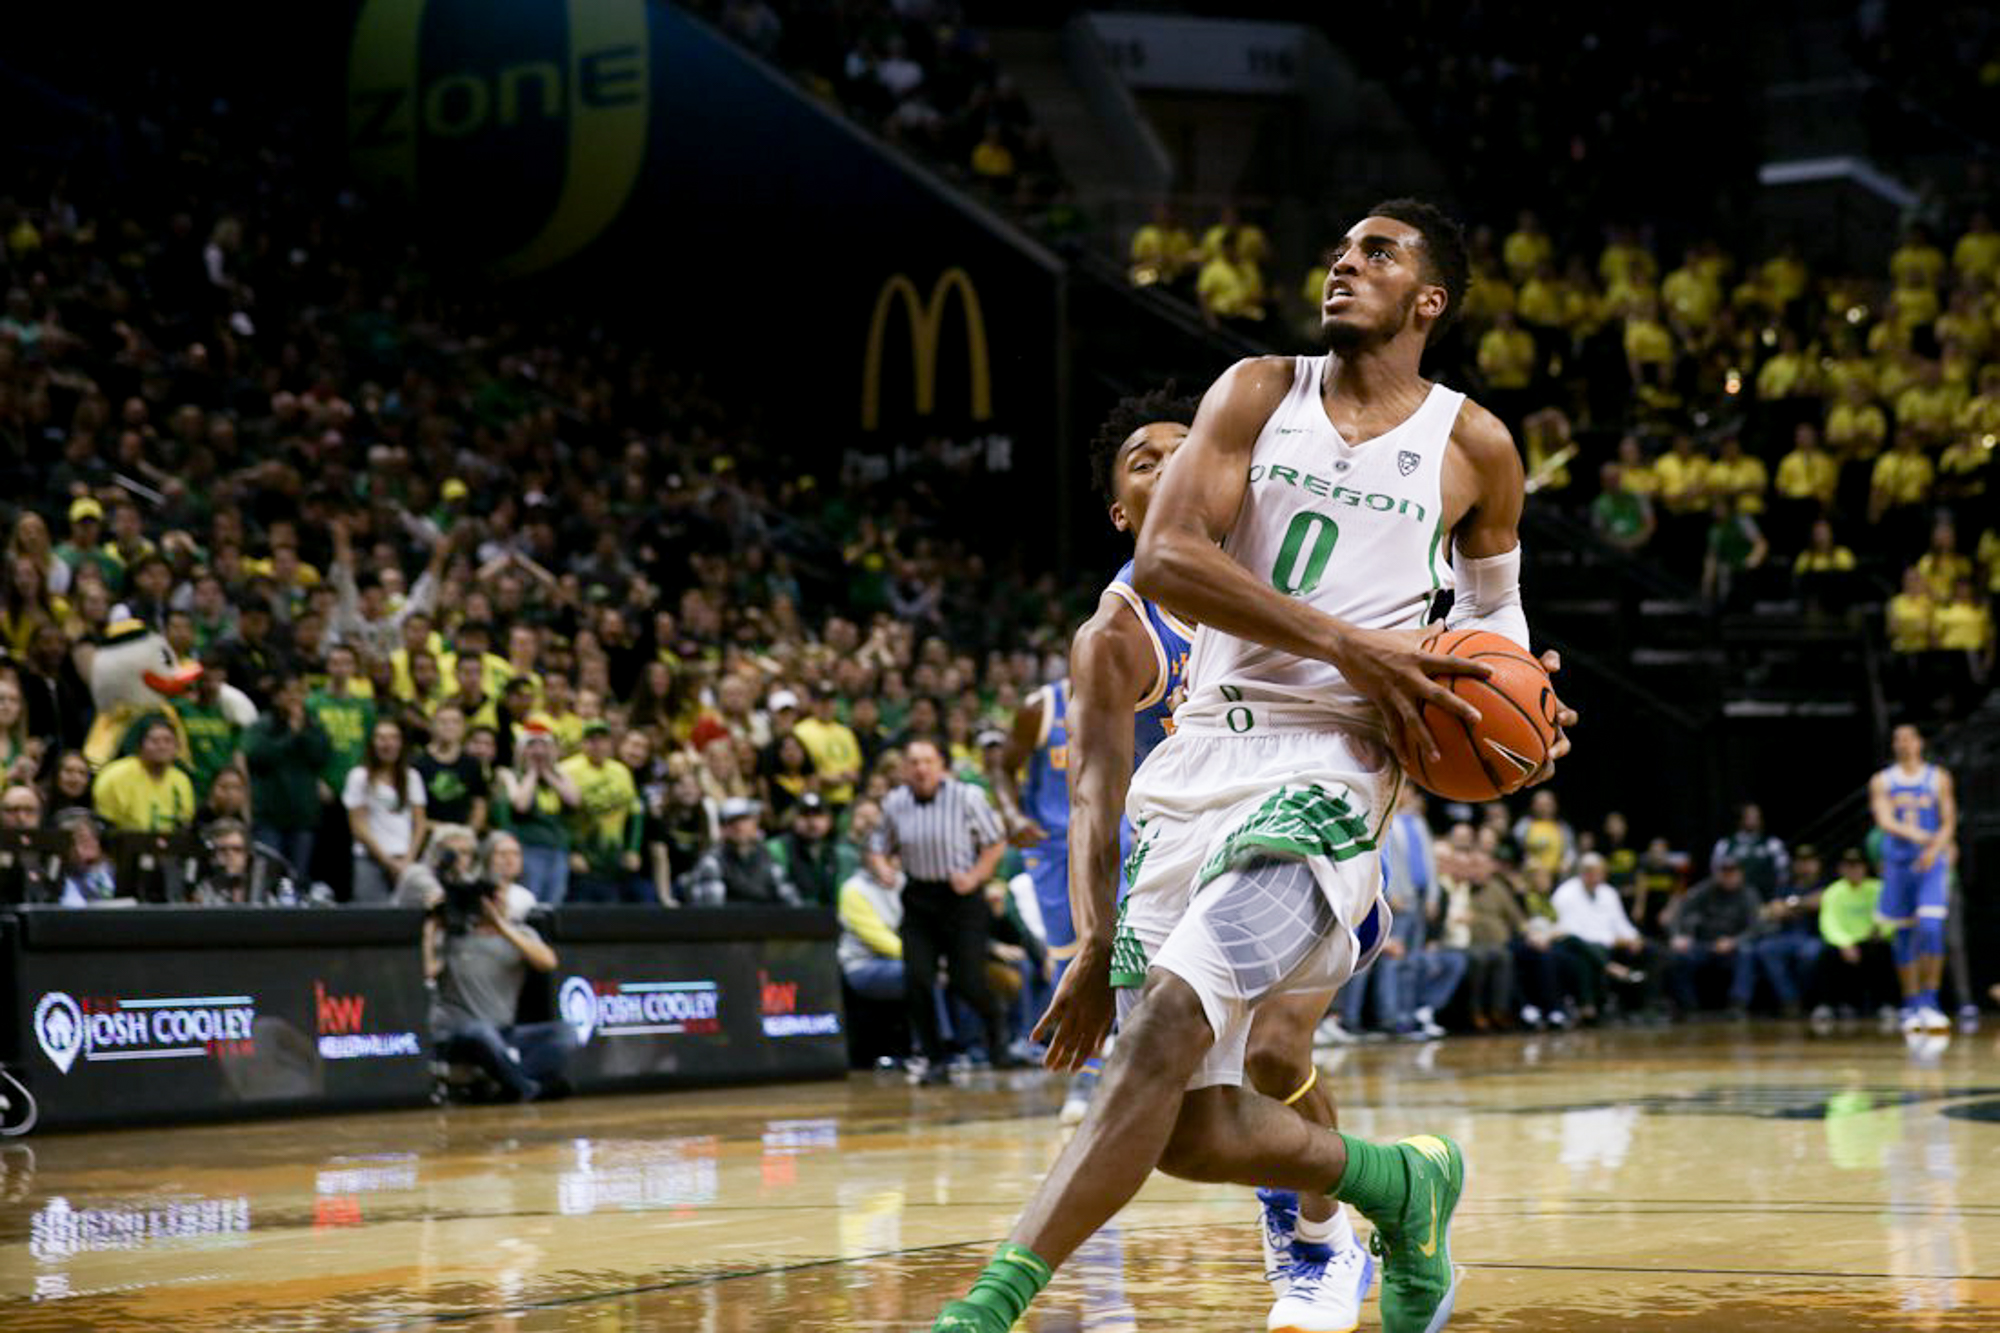 Forward Troy Brown (0) goes in for a shot. Oregon basketball plays the UCLA Bruins at Matthew Knight Arena in Eugene, Ore. on Jan. 20, 2018. (Natalie Waitt-Gibson/Emerald)